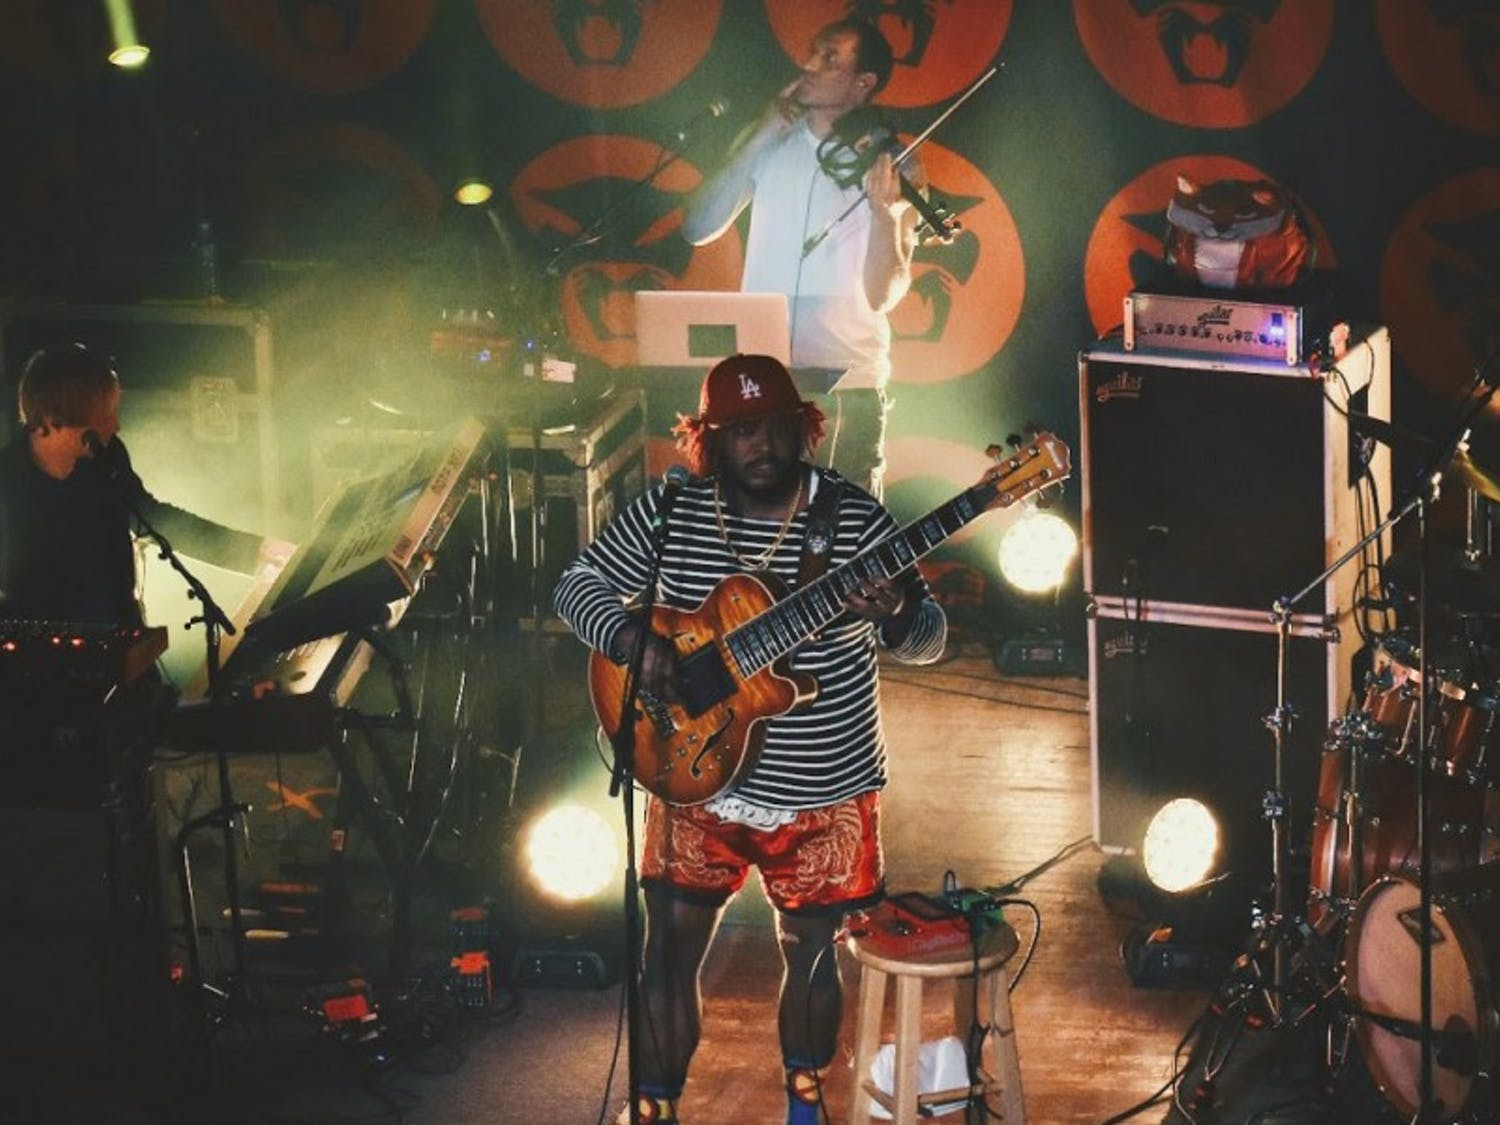 Thundercat gives an entertaining yet strange performance at the Majestic Theater on Tuesday.